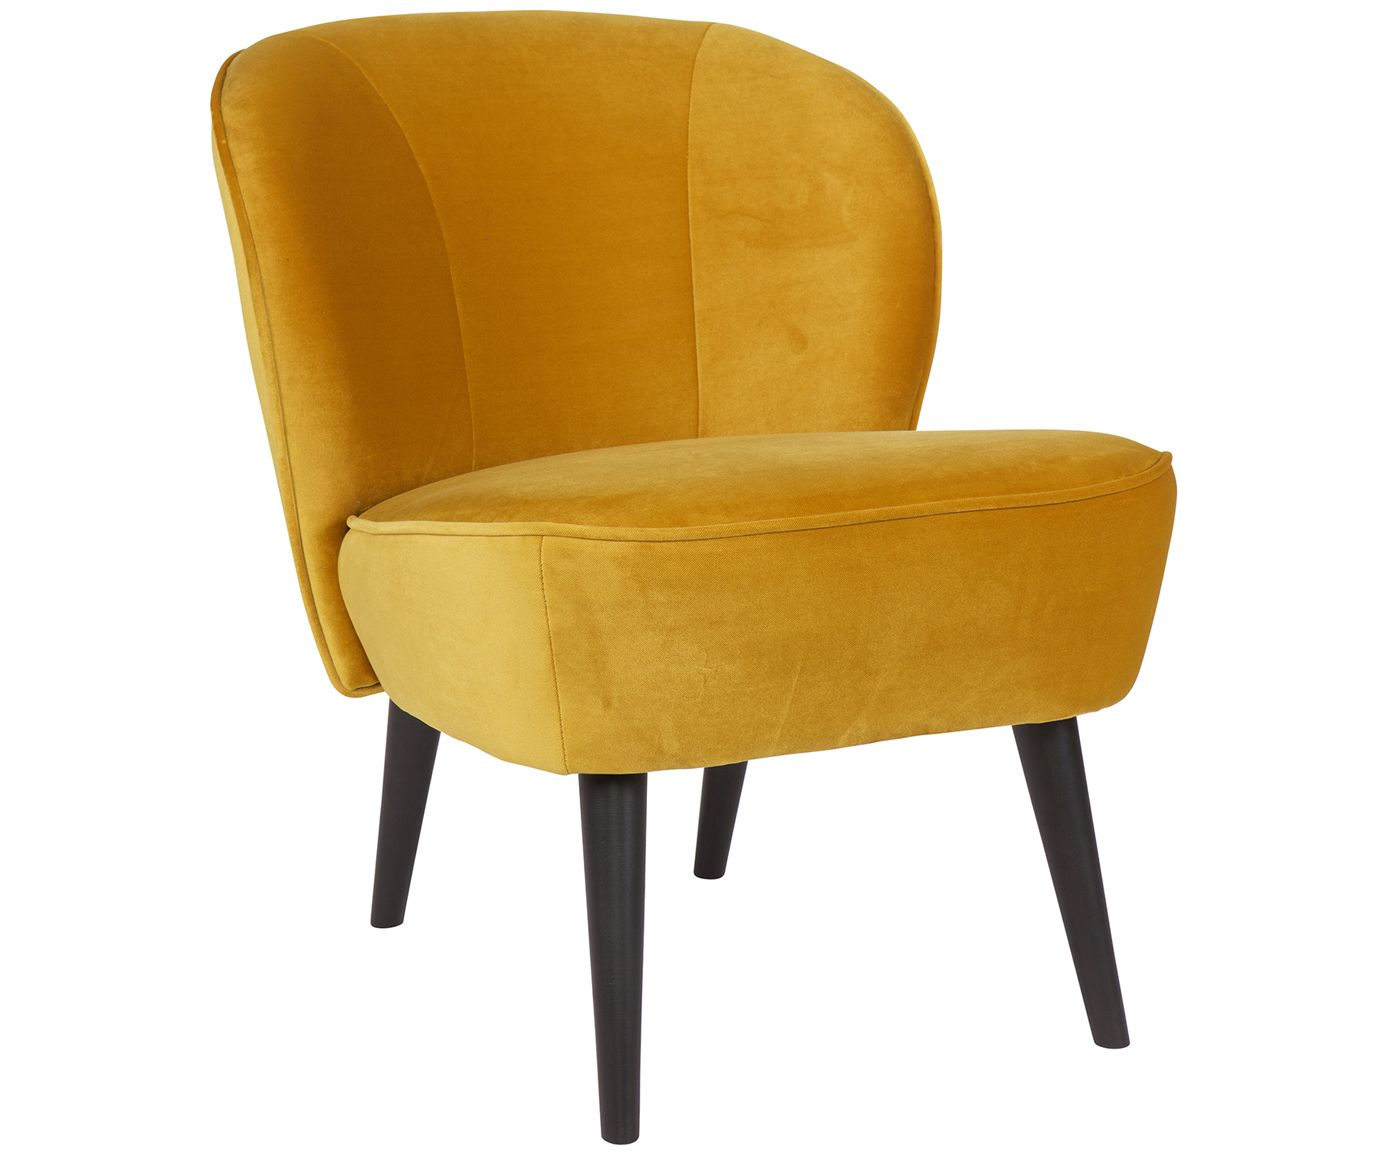 Cocktailsessel Beige Westwing Chairs Stools Pinterest Armchair Yellow Armchair